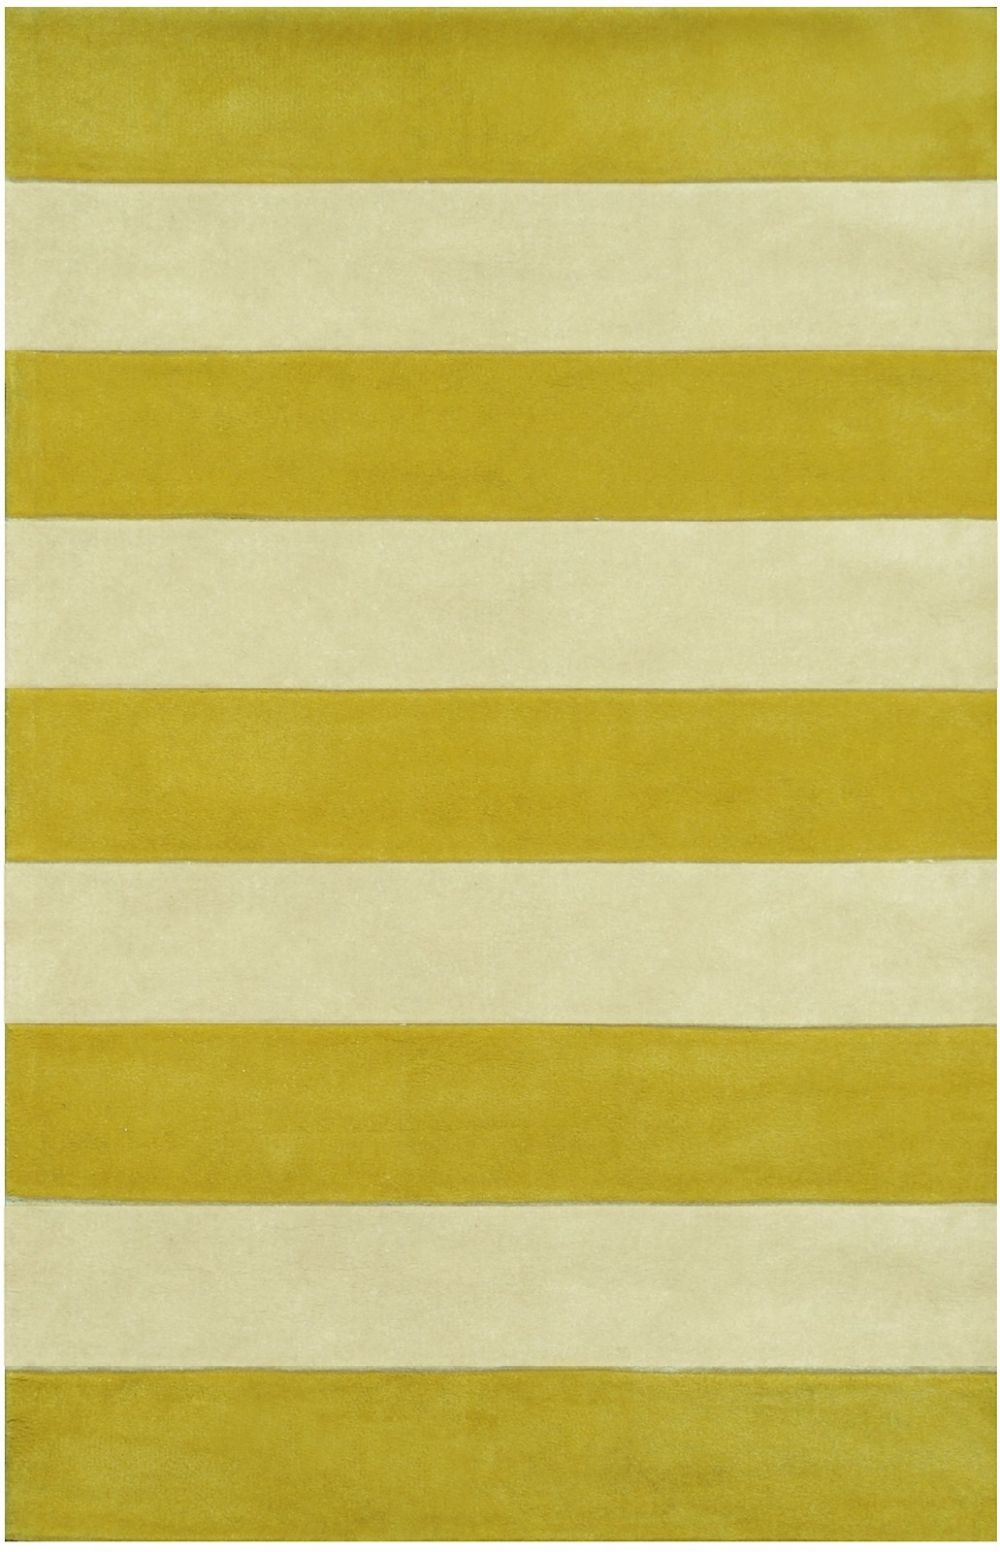 american home beach rug solid/striped area rug collection